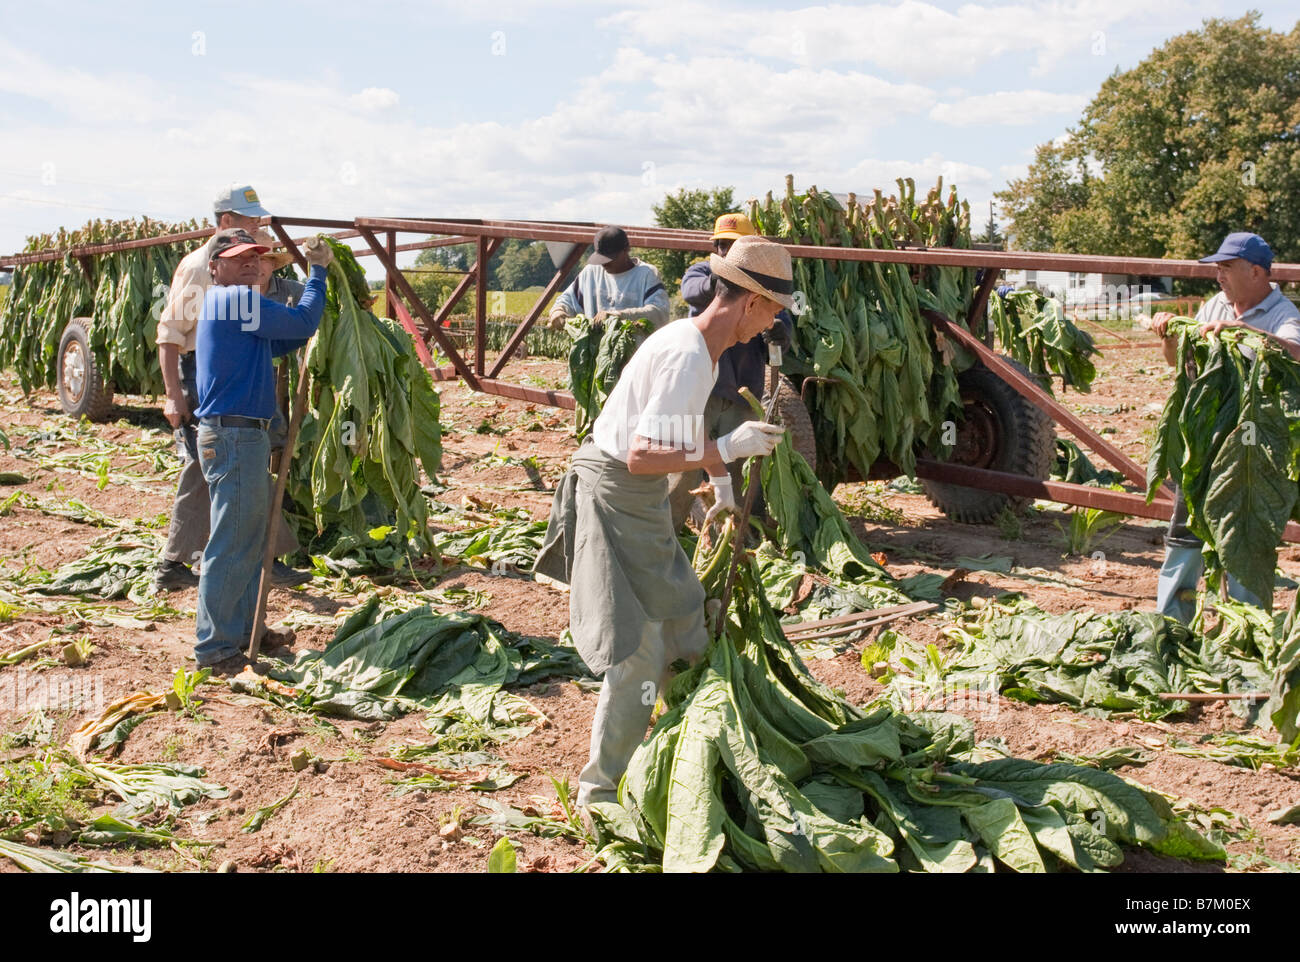 tobacco field workers stockfotos tobacco field workers bilder alamy. Black Bedroom Furniture Sets. Home Design Ideas